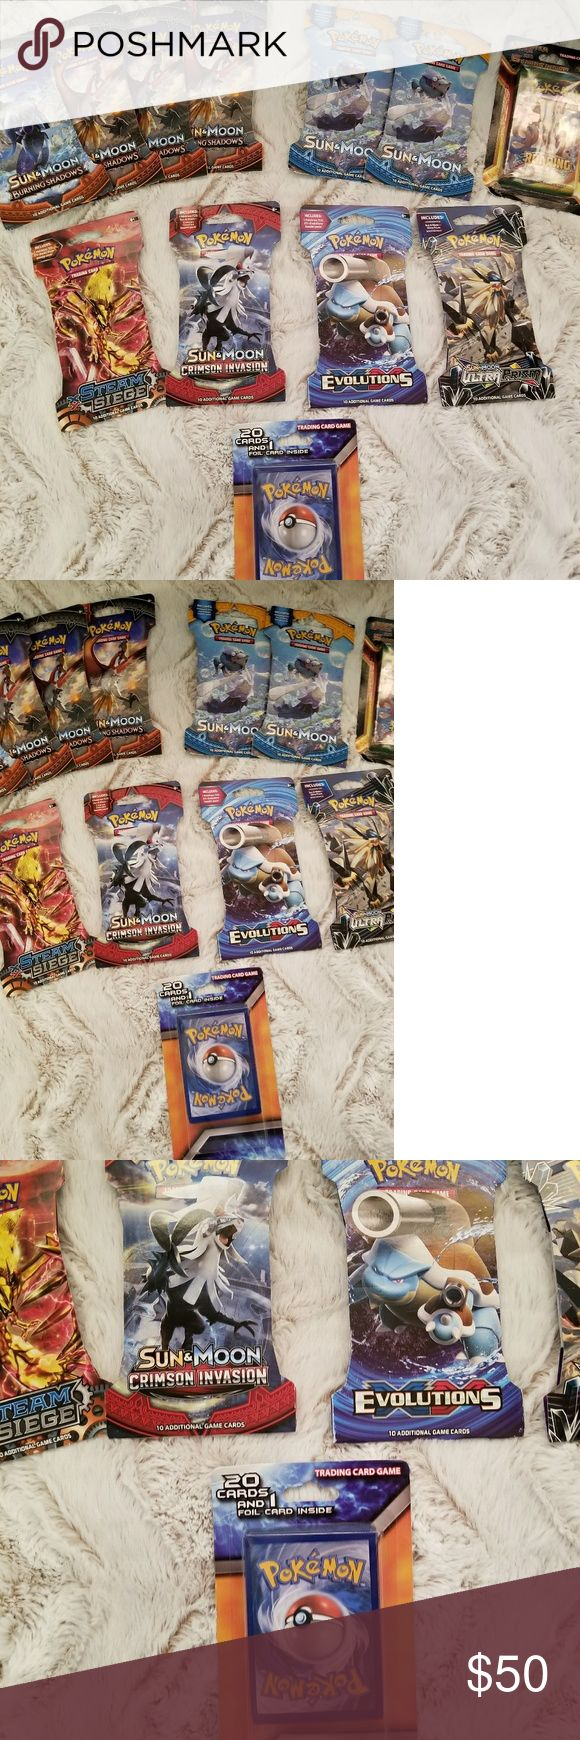 🆕️ 12 Unopened Booster Packs Of Pokemon Cards All BRAND NEW IN PACKS!!🎉🎉 12 UNOPENED BOOSTER PACKS   🐰GREAT EASTER GIFT/ PRESENT🐰  Packs Include: -4 Booster Packs Of Sun&Moon Burning Shadows -2 Booster Packs Of Sun&Moon  -1 Booster Pack Of XY ROARING SKIES Which Includes 5 Extra Pokemon cards -1 XY STEAM SIEGE  -1 Sun&Moon CRIMSON INVASION  -1 Evolutions -1 Sun&Moon ULTRA PRISM -1 PACK OF 20 CARDS AND ONE FOIL ( HOLOGRAPHIC CARD ) Pokemon Other